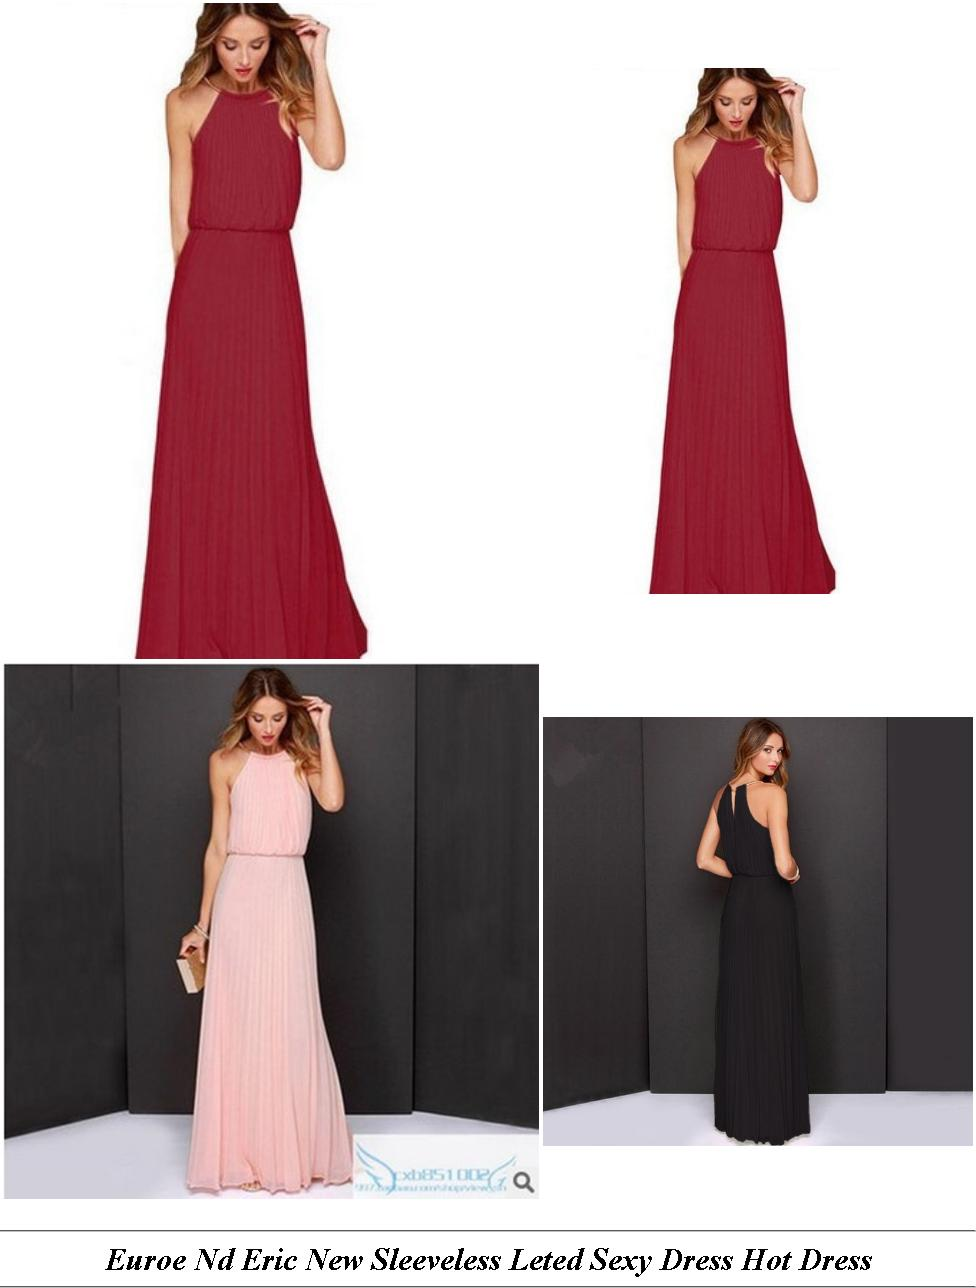 Plus Size Maxi Dresses - Sale On Brands Online - Night Dress - Cheap Trendy Clothes